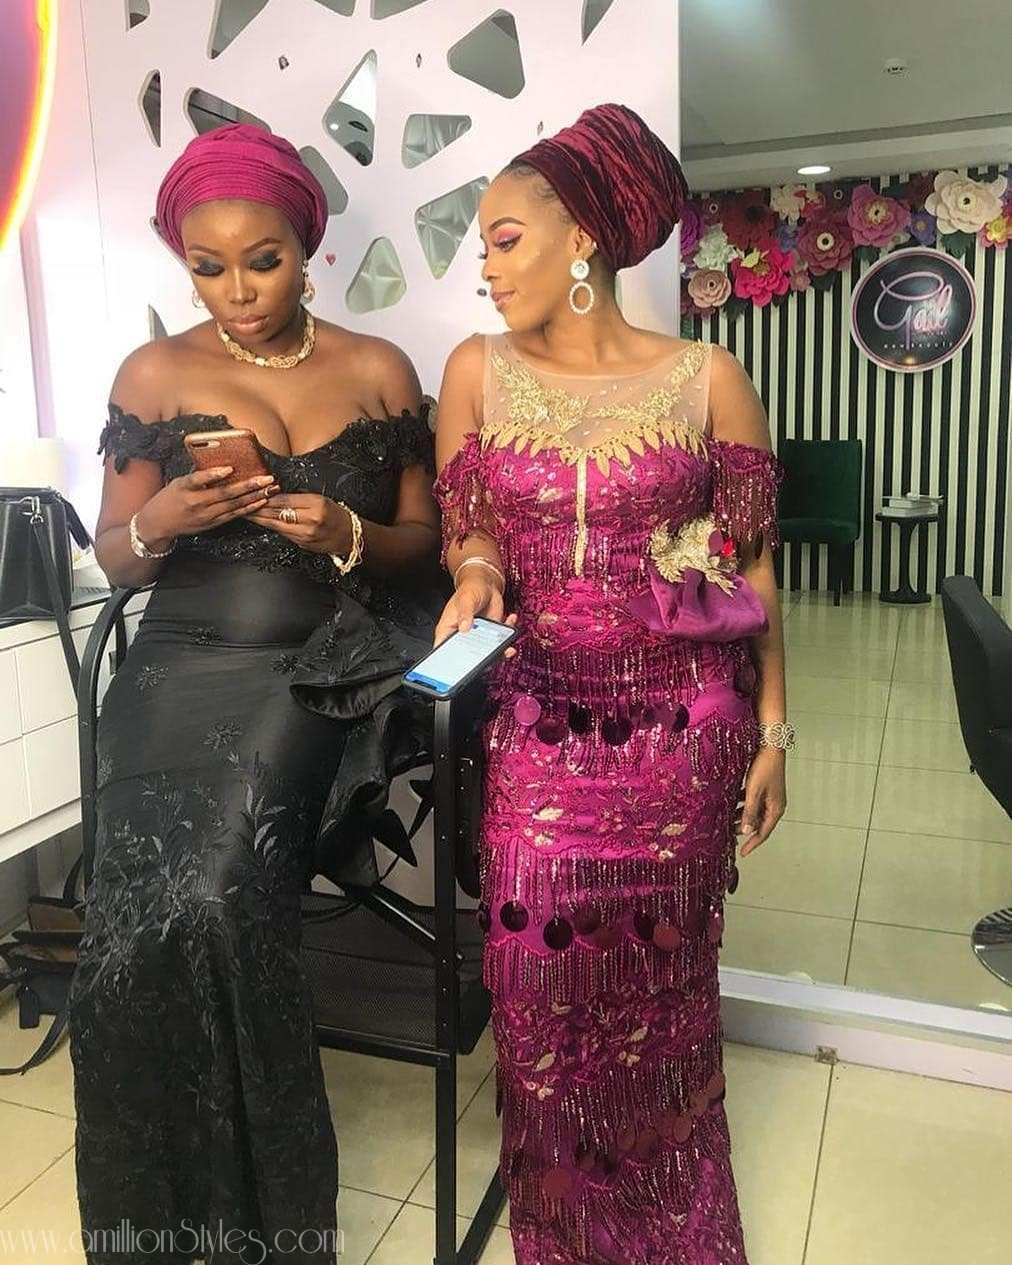 Latest Lace Asoebi Styles Volume 9 beauties! check out these dazzling aso ebi styles would turn heads at any owambe BEAUTIES! CHECK OUT THESE DAZZLING ASO EBI STYLES WOULD TURN HEADS AT ANY OWAMBE asoebi  tuminicious x  miss ginika in  lizzybee24clotheir amillionstyles